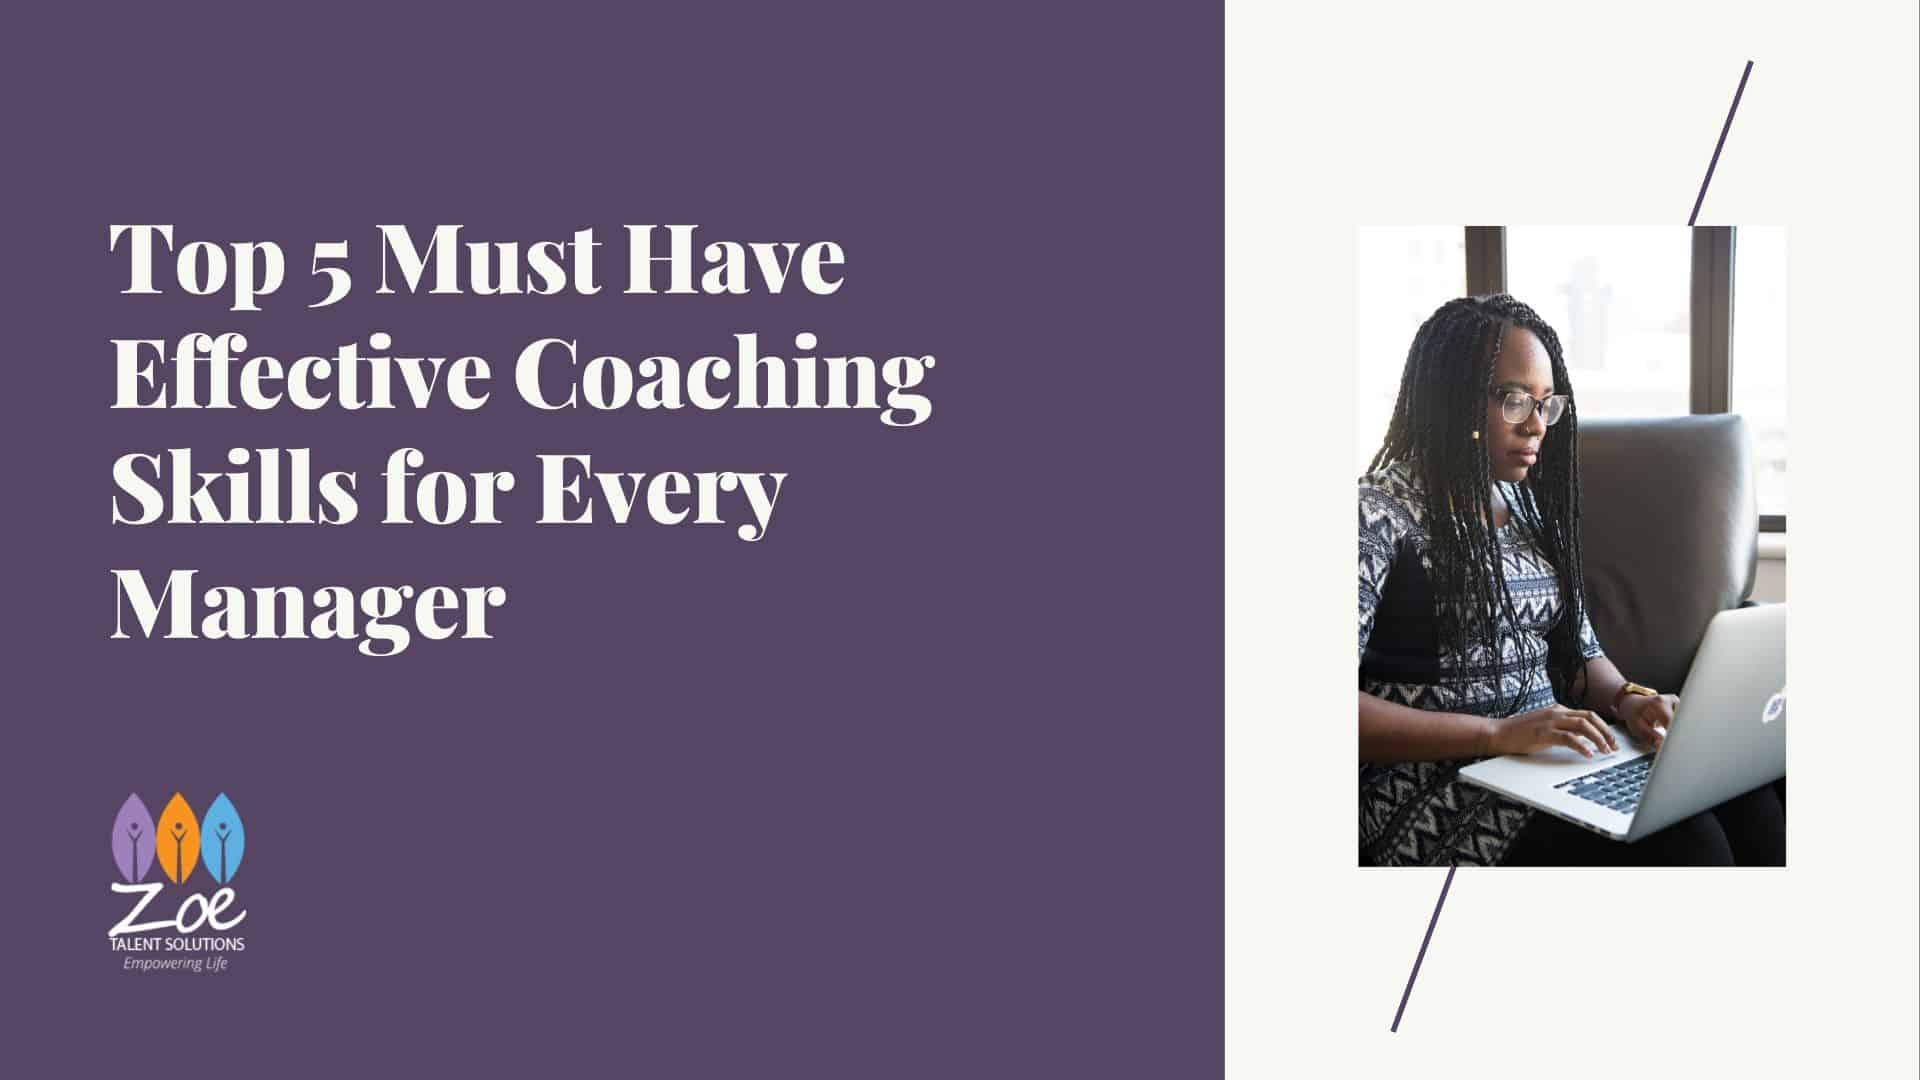 Top 5 Must Have Effective Coaching Skills for Every Manager